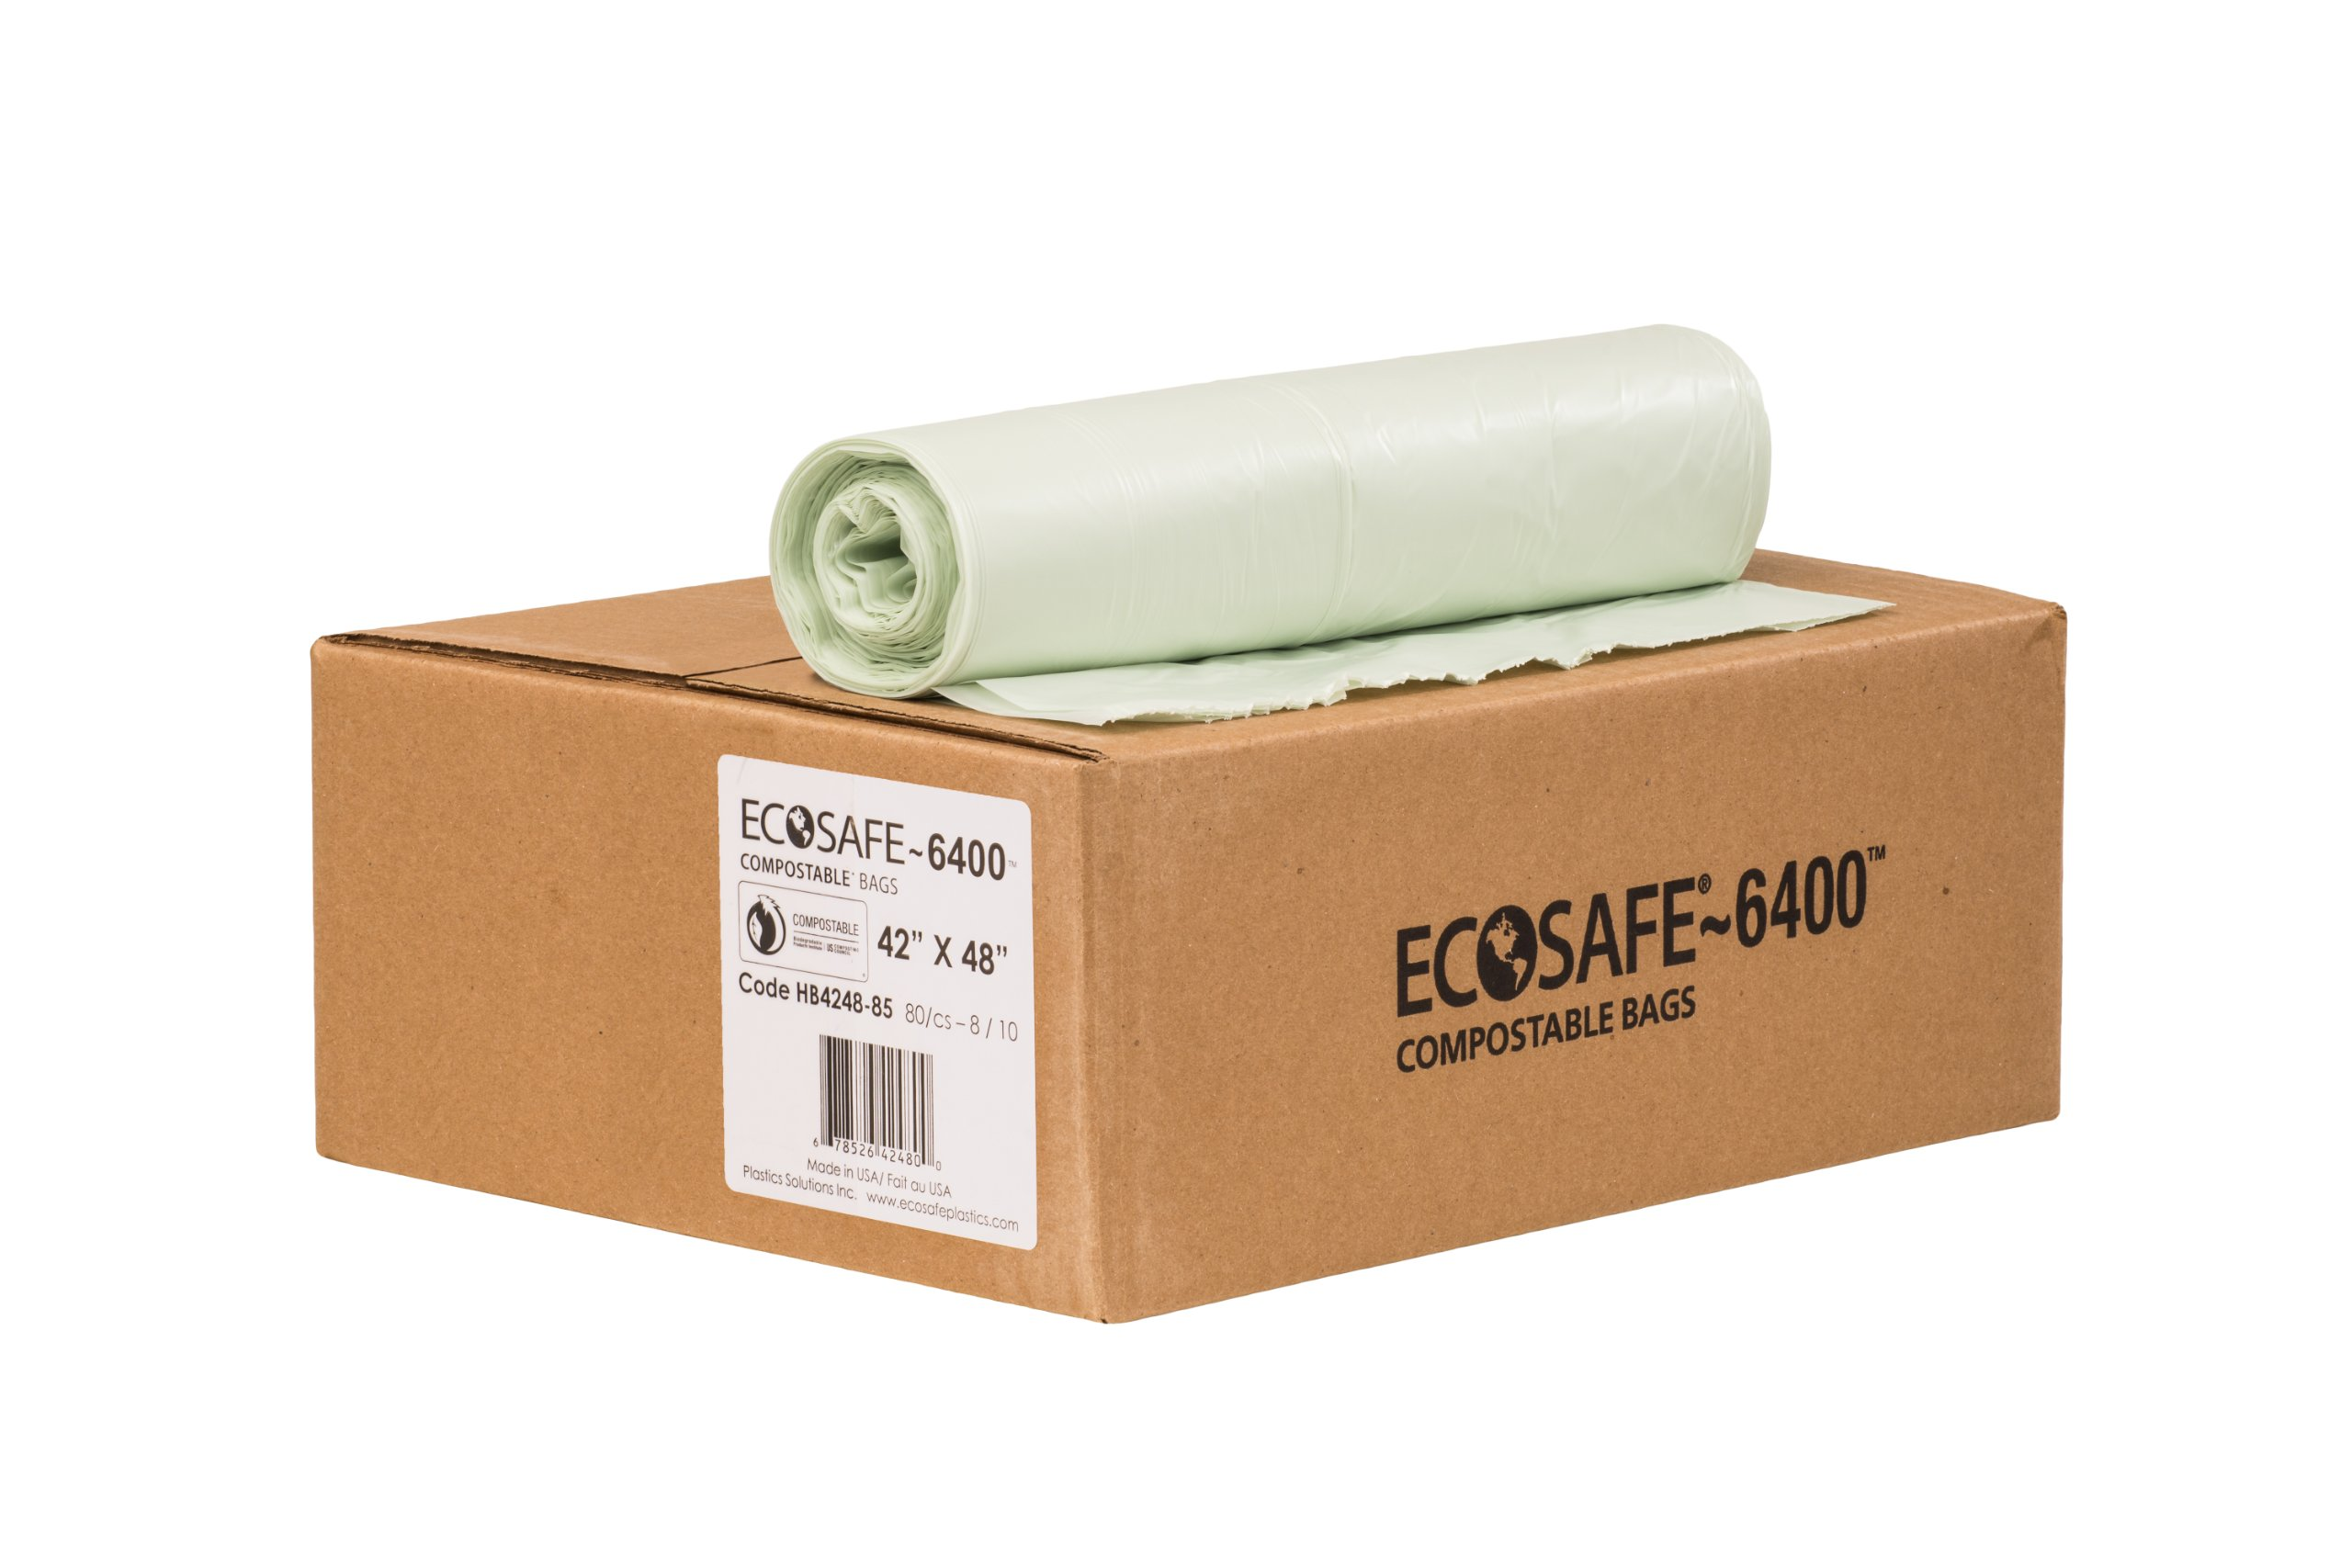 EcoSafe-6400 HB4248-85 Compostable Bag, Certified Compostable, 55-Gallon, Green (Pack of 80)